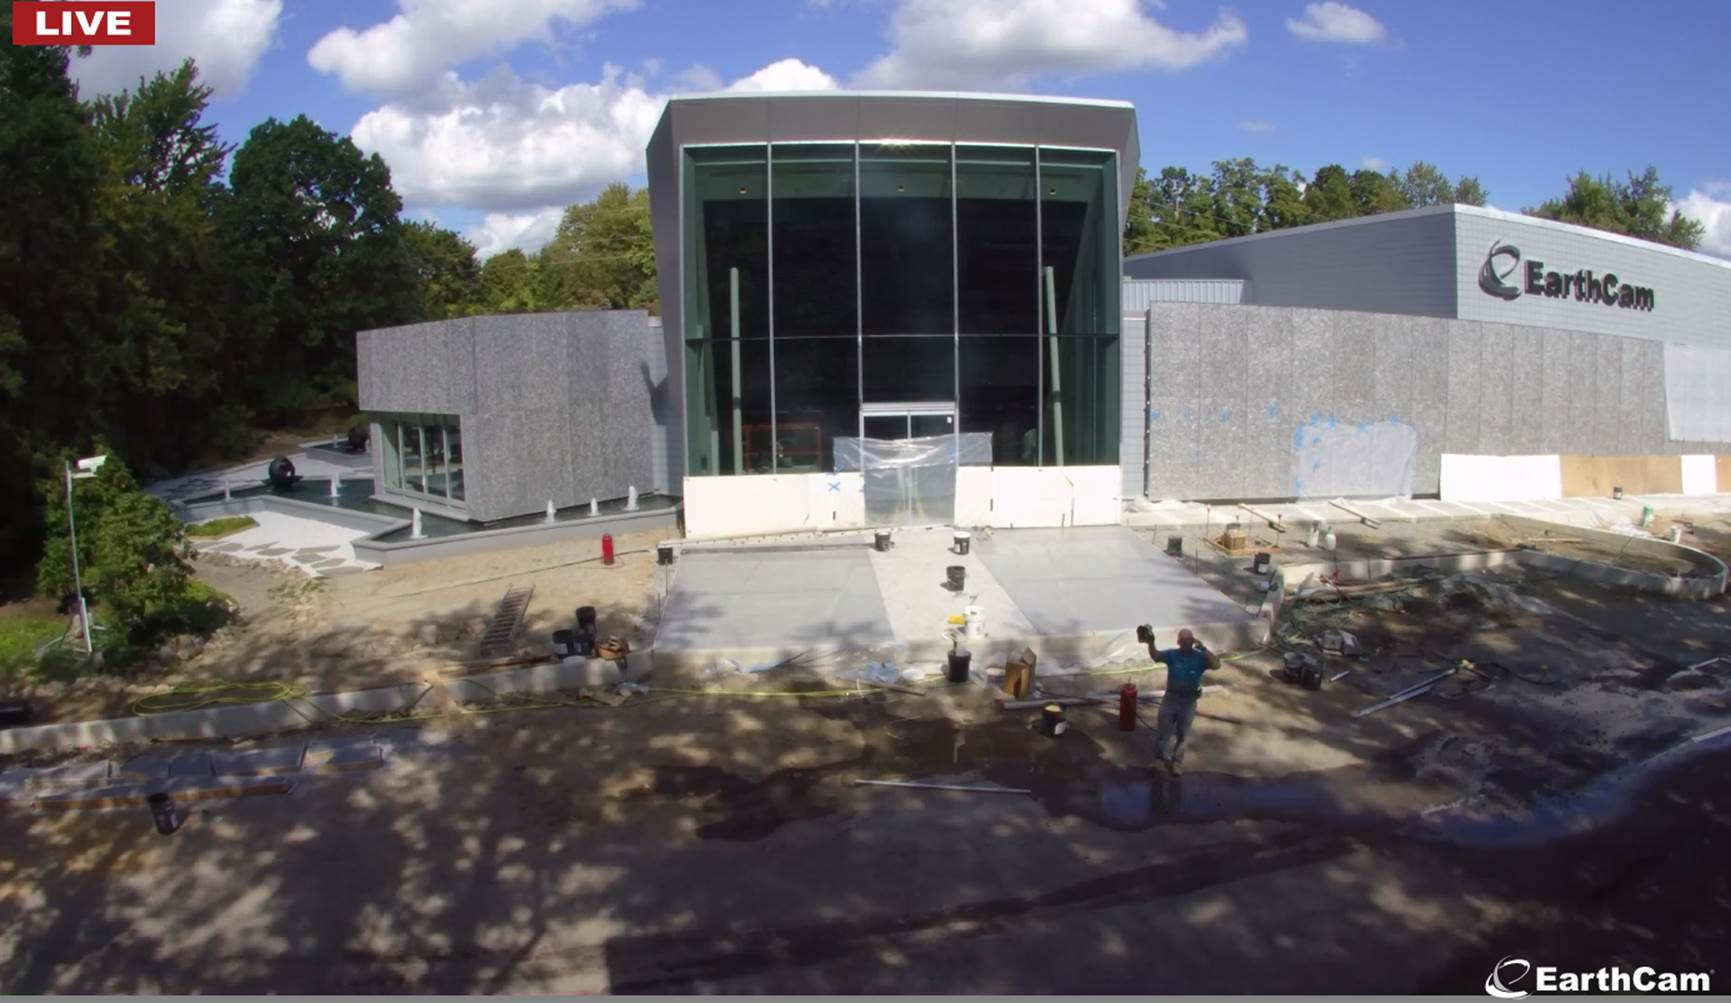 Bomanite installation of Bomanite Alloy at EarthCam World Headquarters in New Jersey by Ira Goldberg of Beyond Concrete in a real-time feed and also available in time lapse.